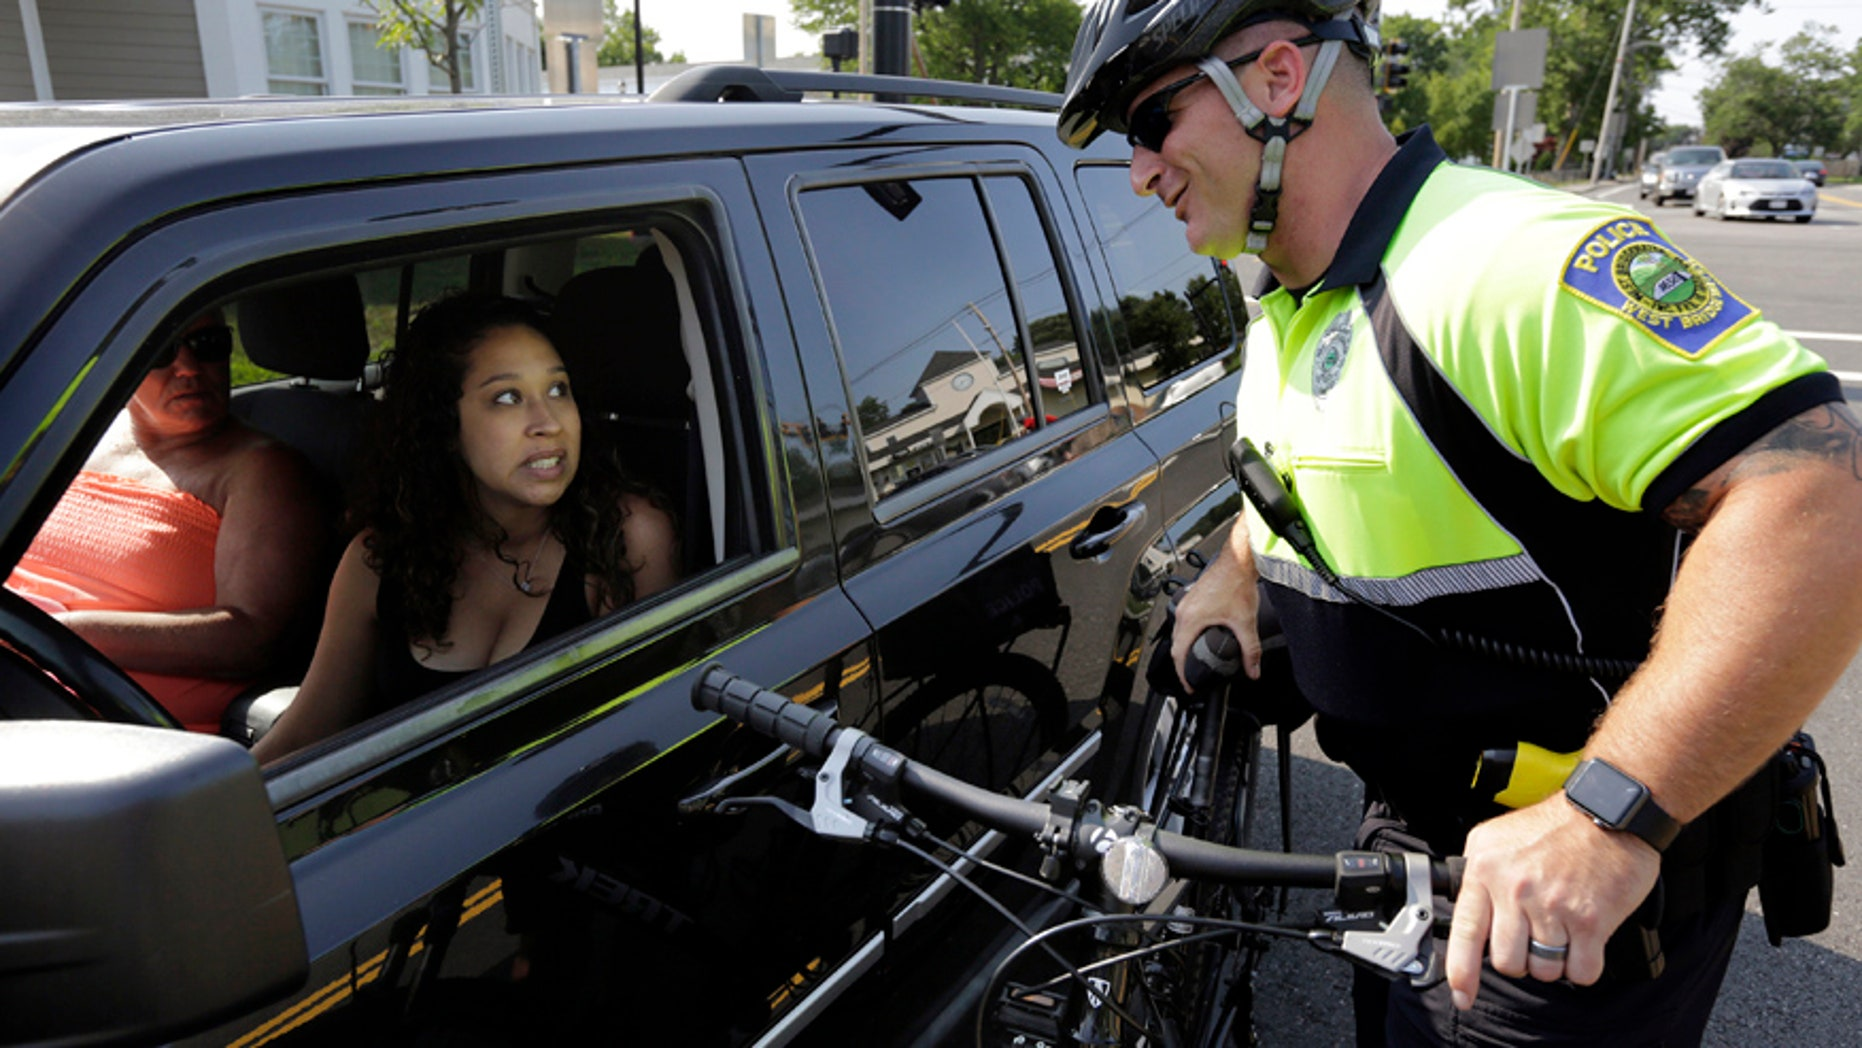 July 20, 2016: Police officer Matthew Monteiro speaks to a motorist about texting while driving while patrolling on his bicycle in East Bridgewater, Mass.